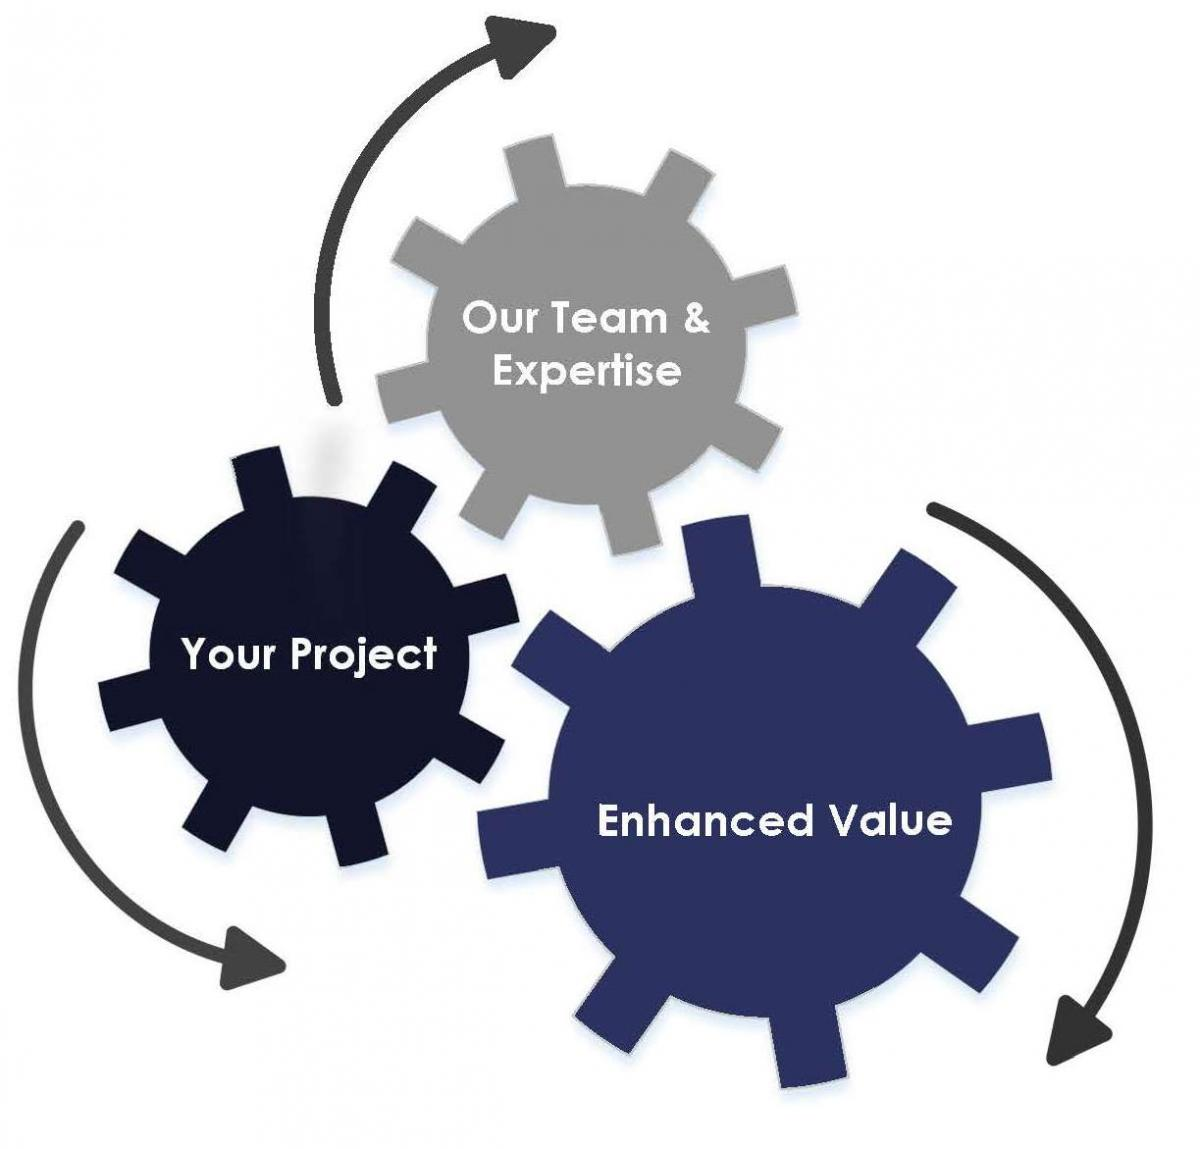 Your Project Our Team and Expertise creates Enhanced Value